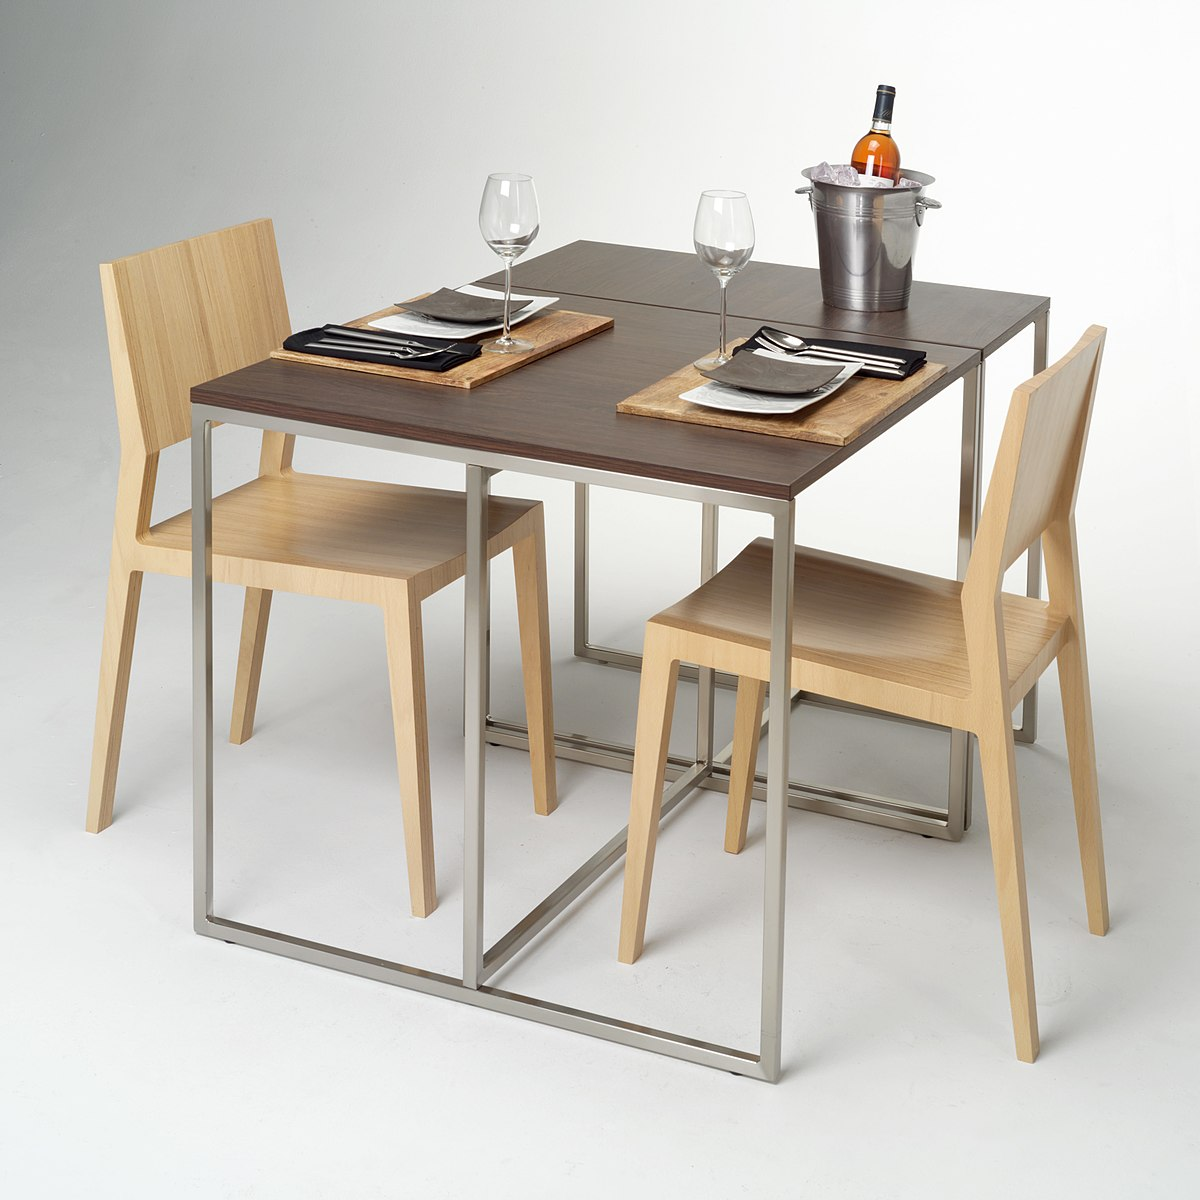 Furniture wikipedia - Two person dining table set ...